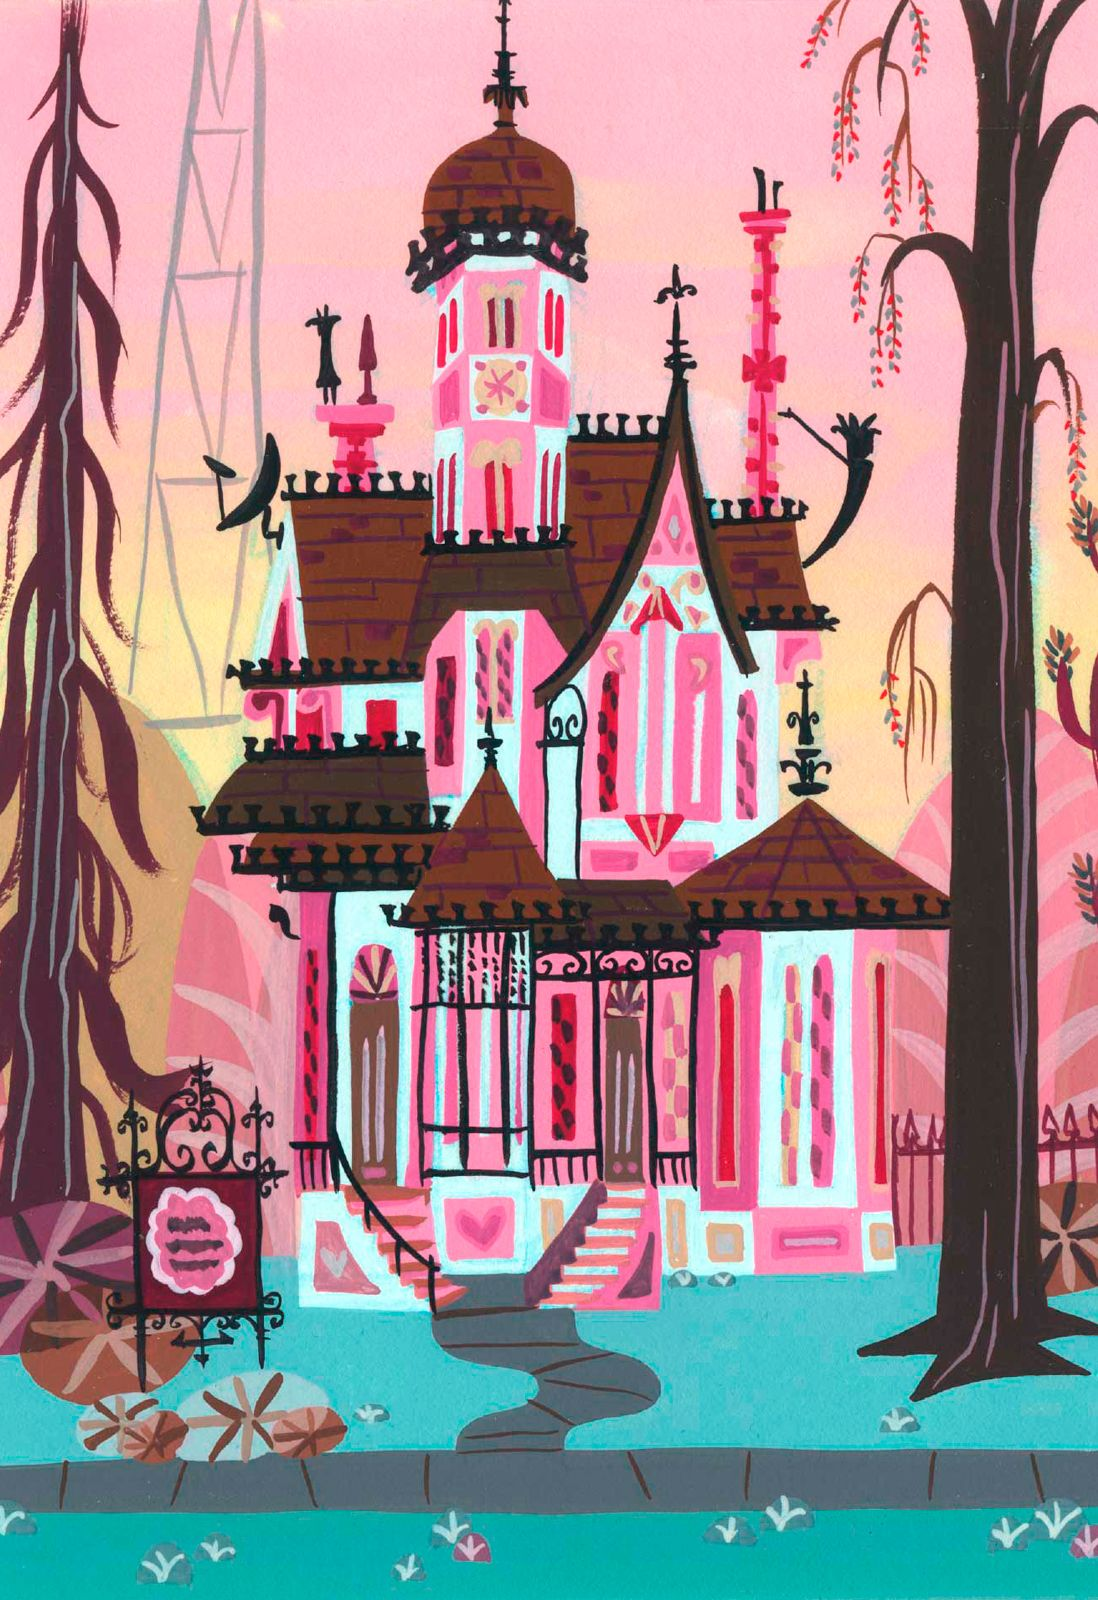 Fosters Home For Imaginary foster's home for imaginary friends concept art - carol